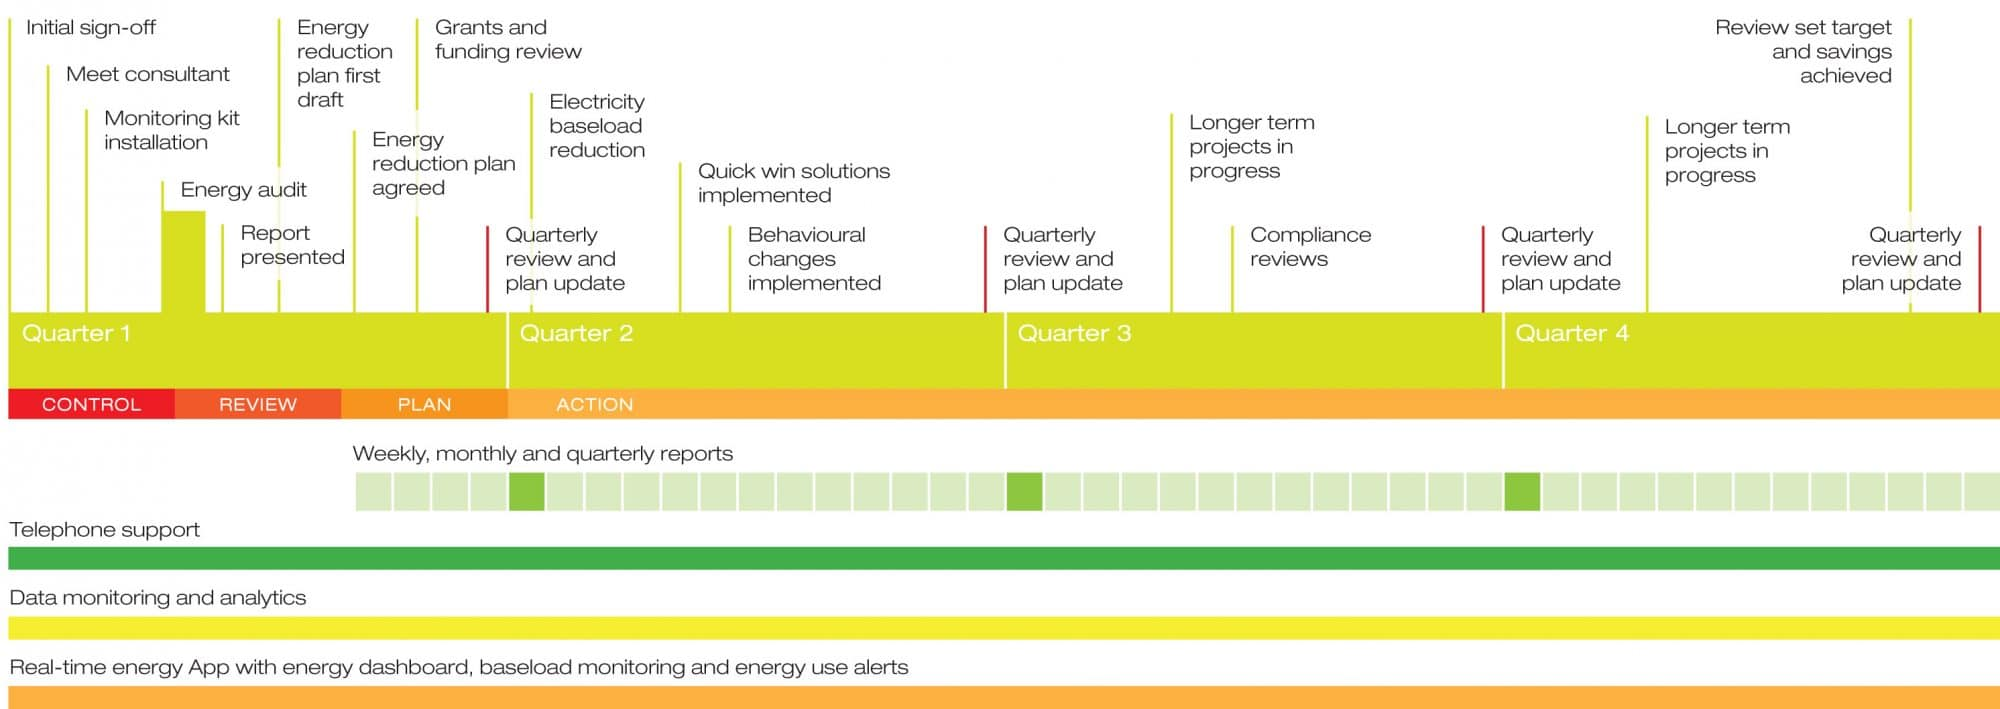 Typical timeline for the delivery of the SMART Energy Management Service